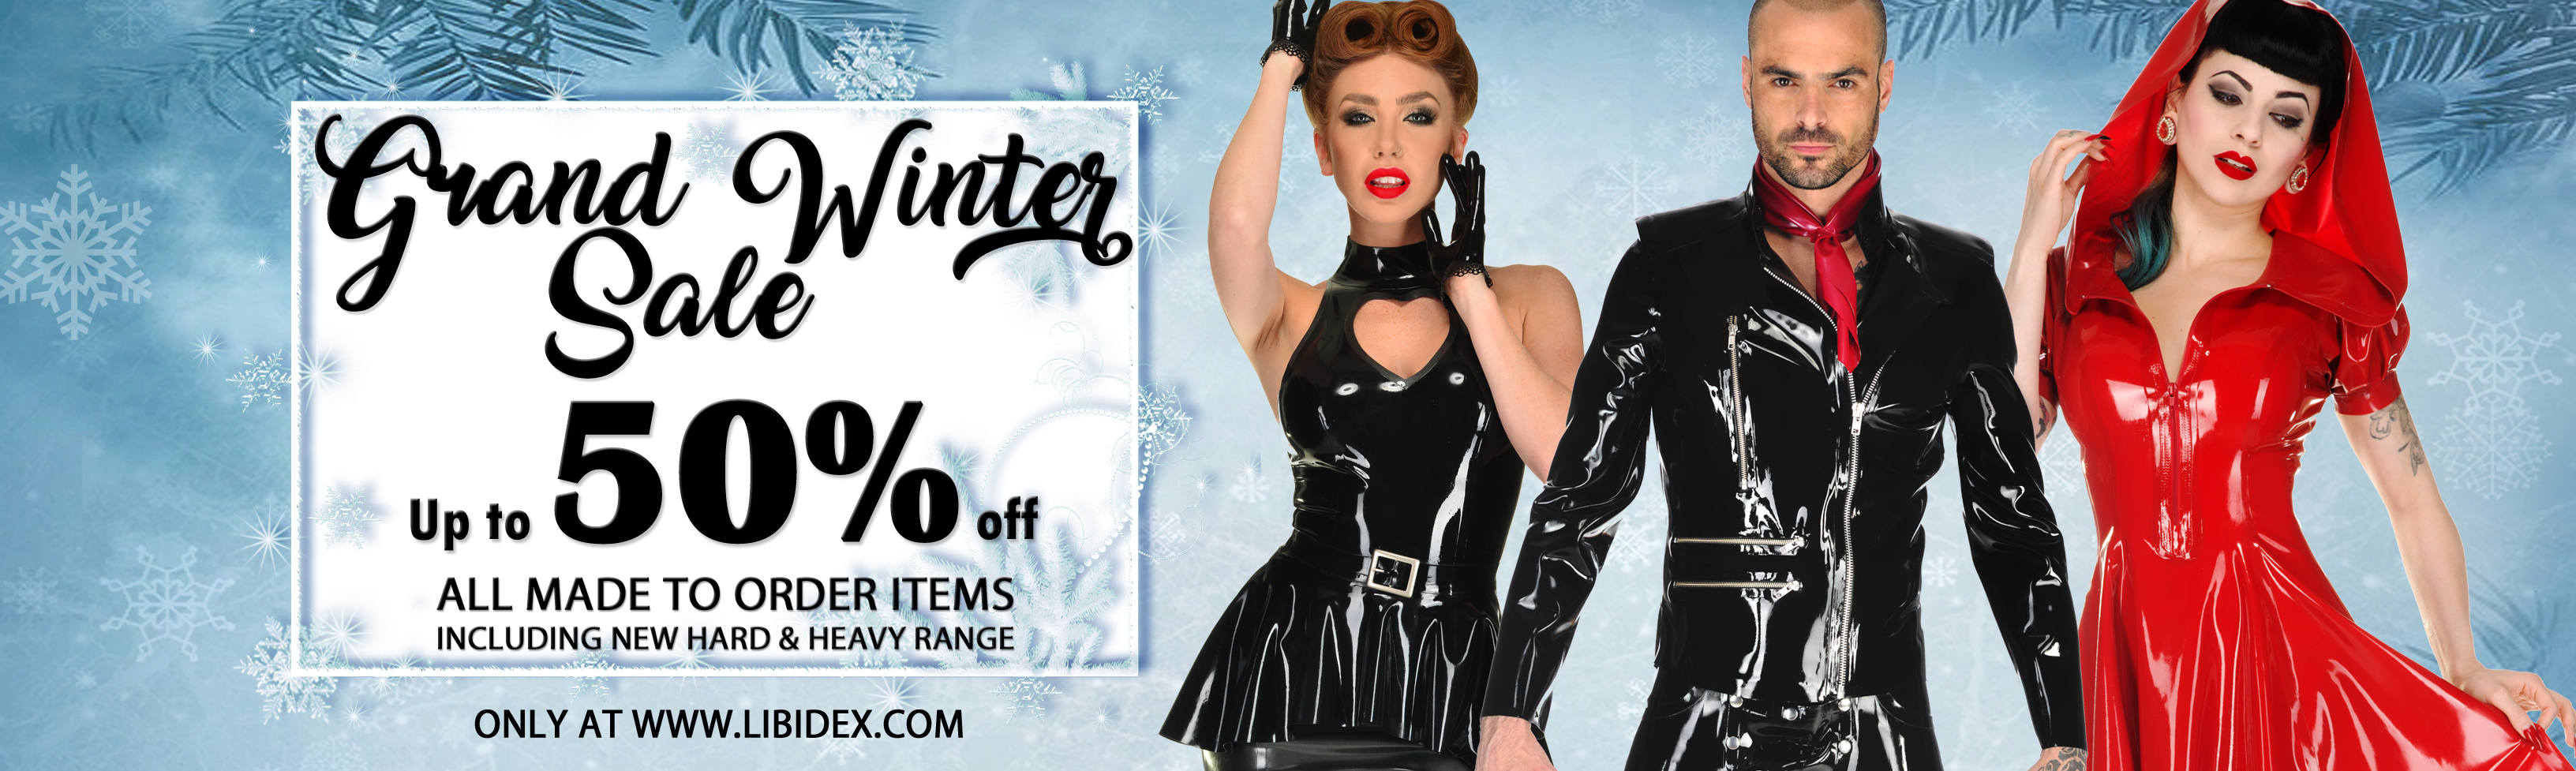 GRAND WINTER SALE